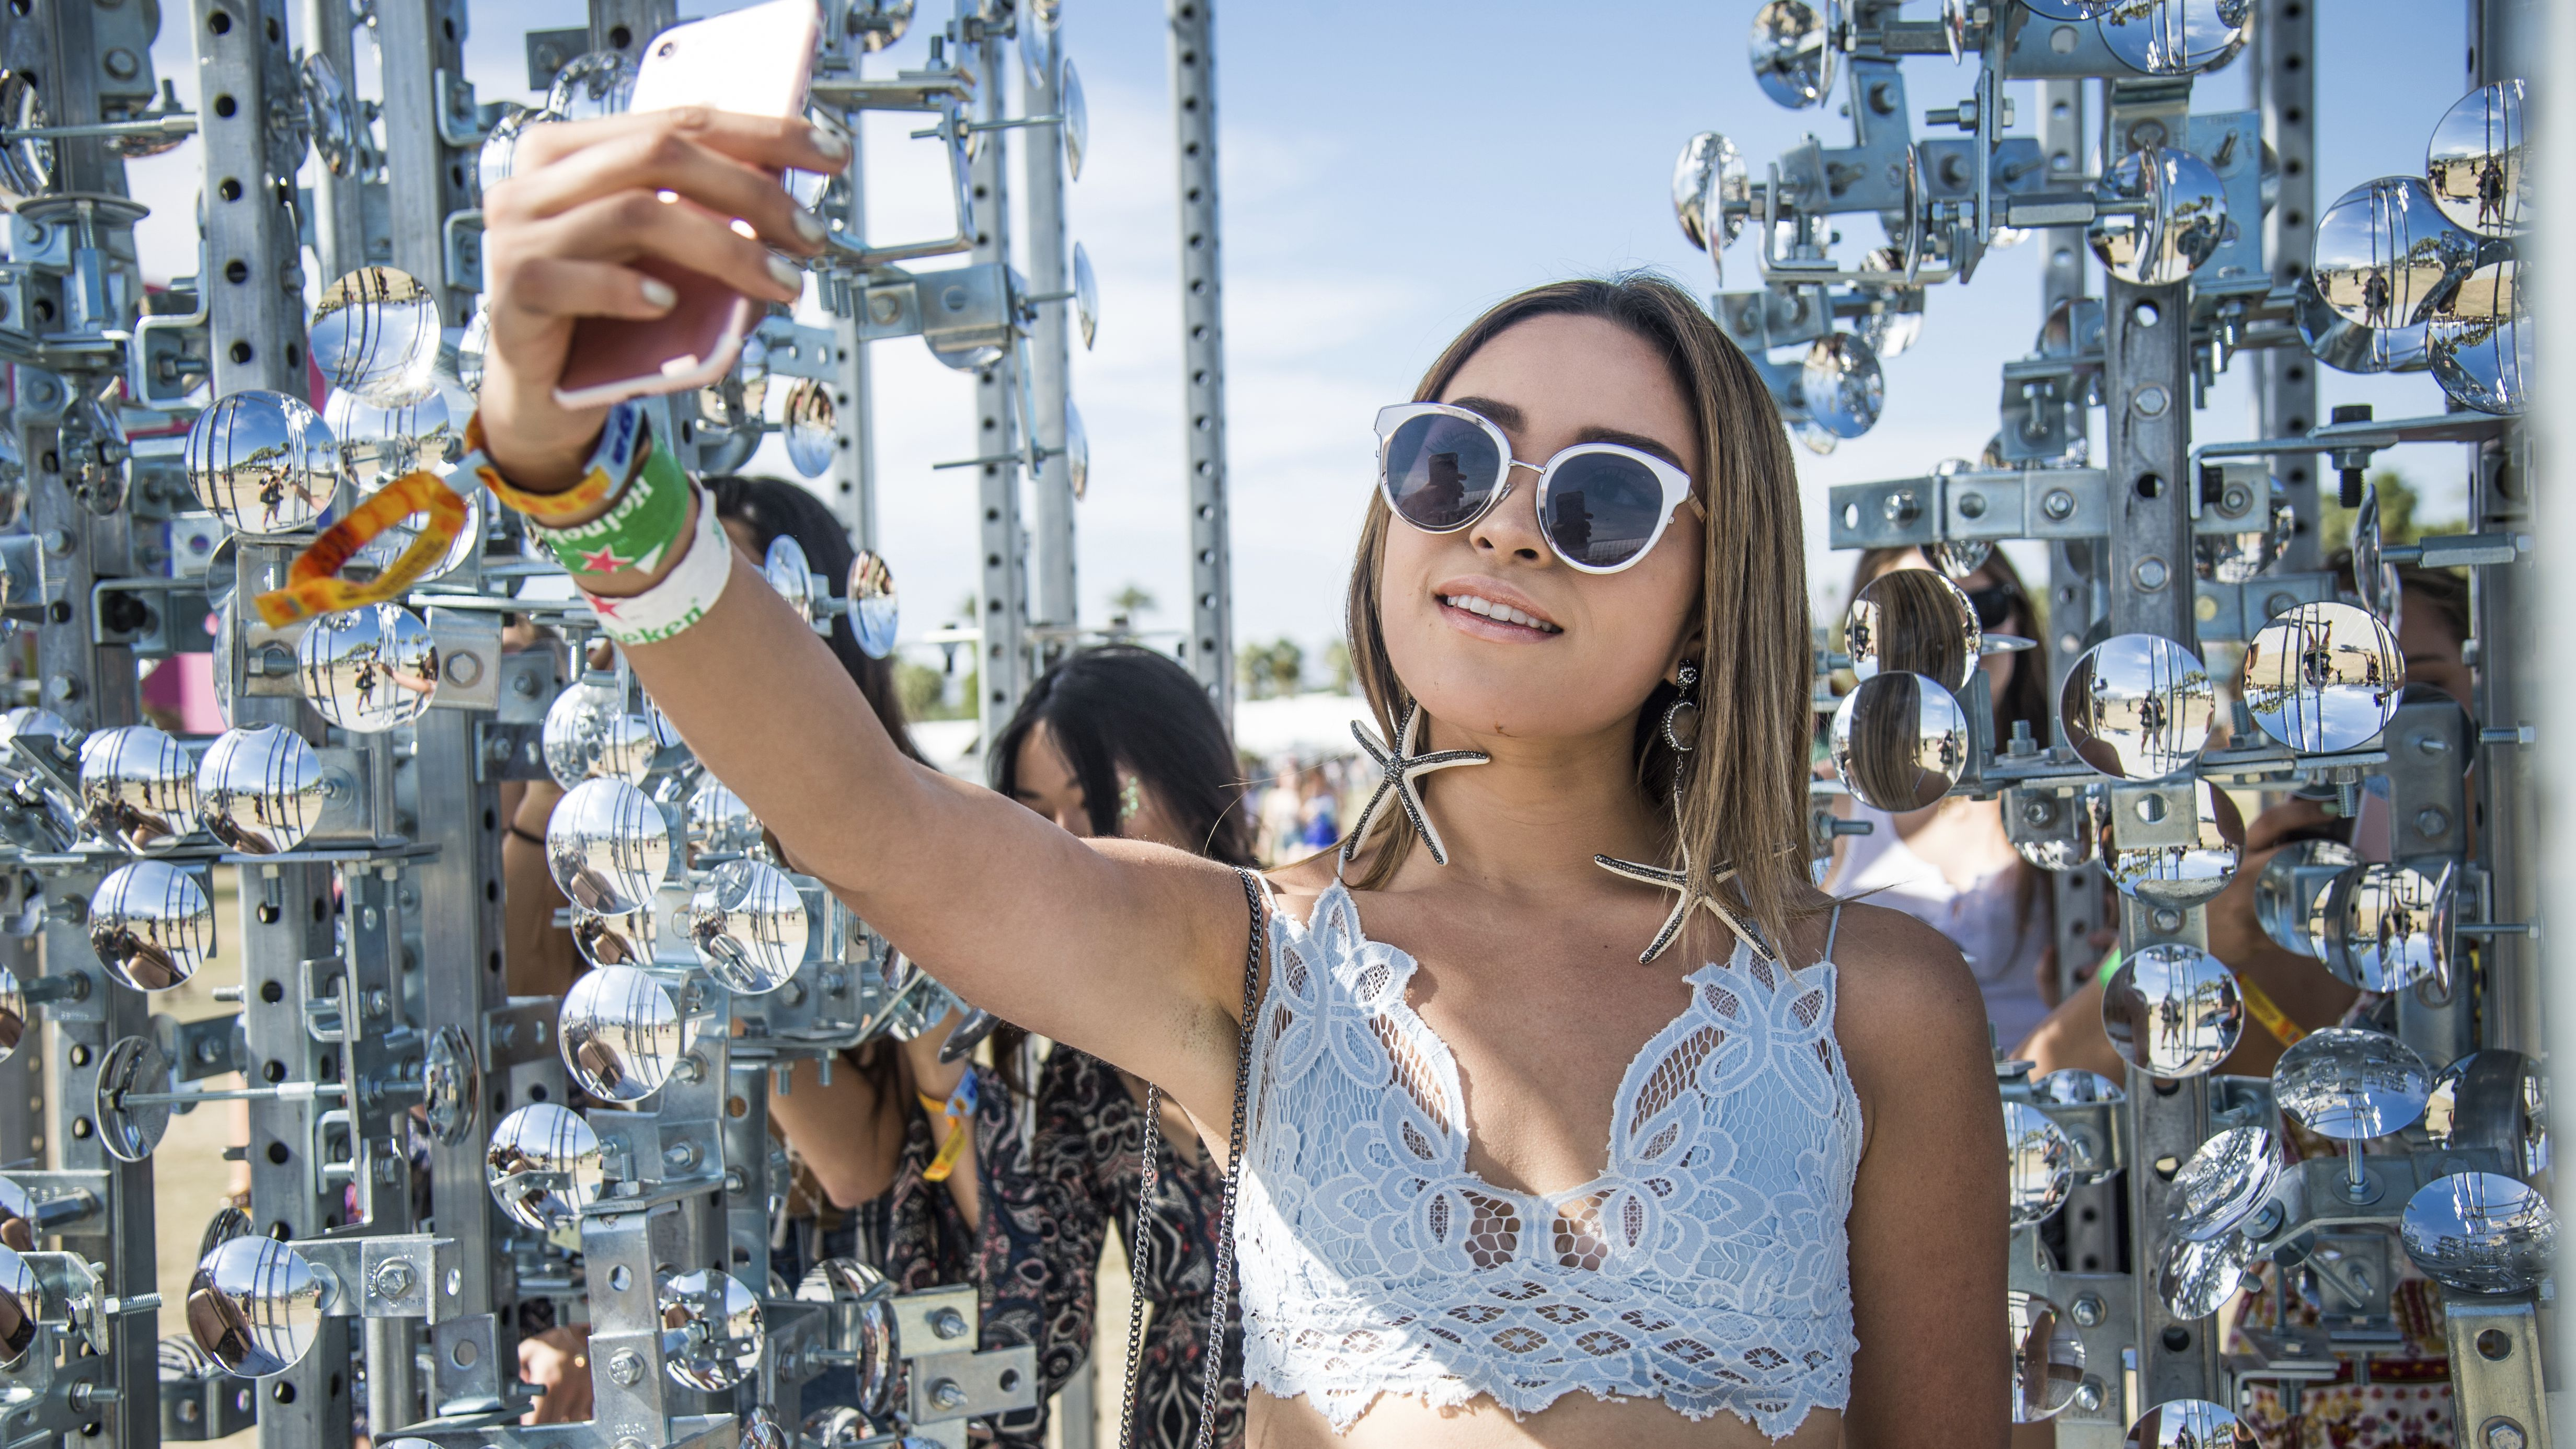 A festival goer takes a selfie at Coachella Music & Arts Festival at the Empire Polo Club on Sunday, April 16, 2017, in Indio, Calif. (Photo by Amy Harris/Invision/AP)